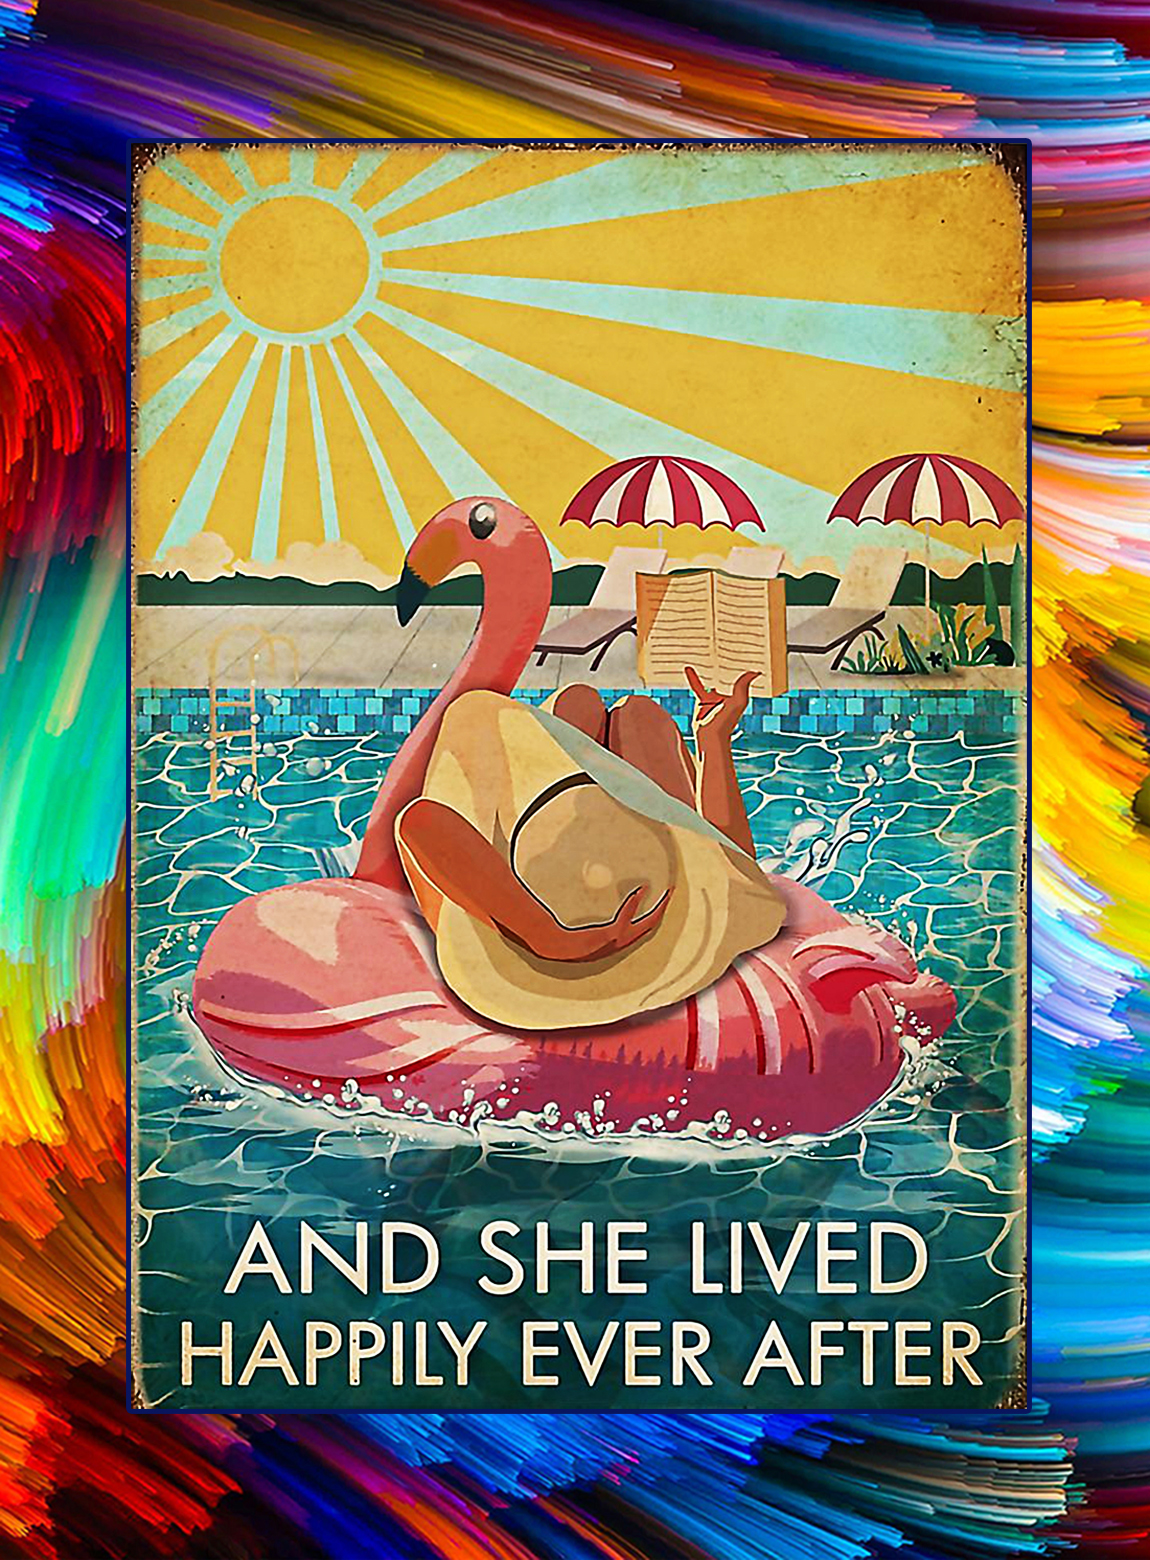 Flamingo and she lived happily ever after poster - A3